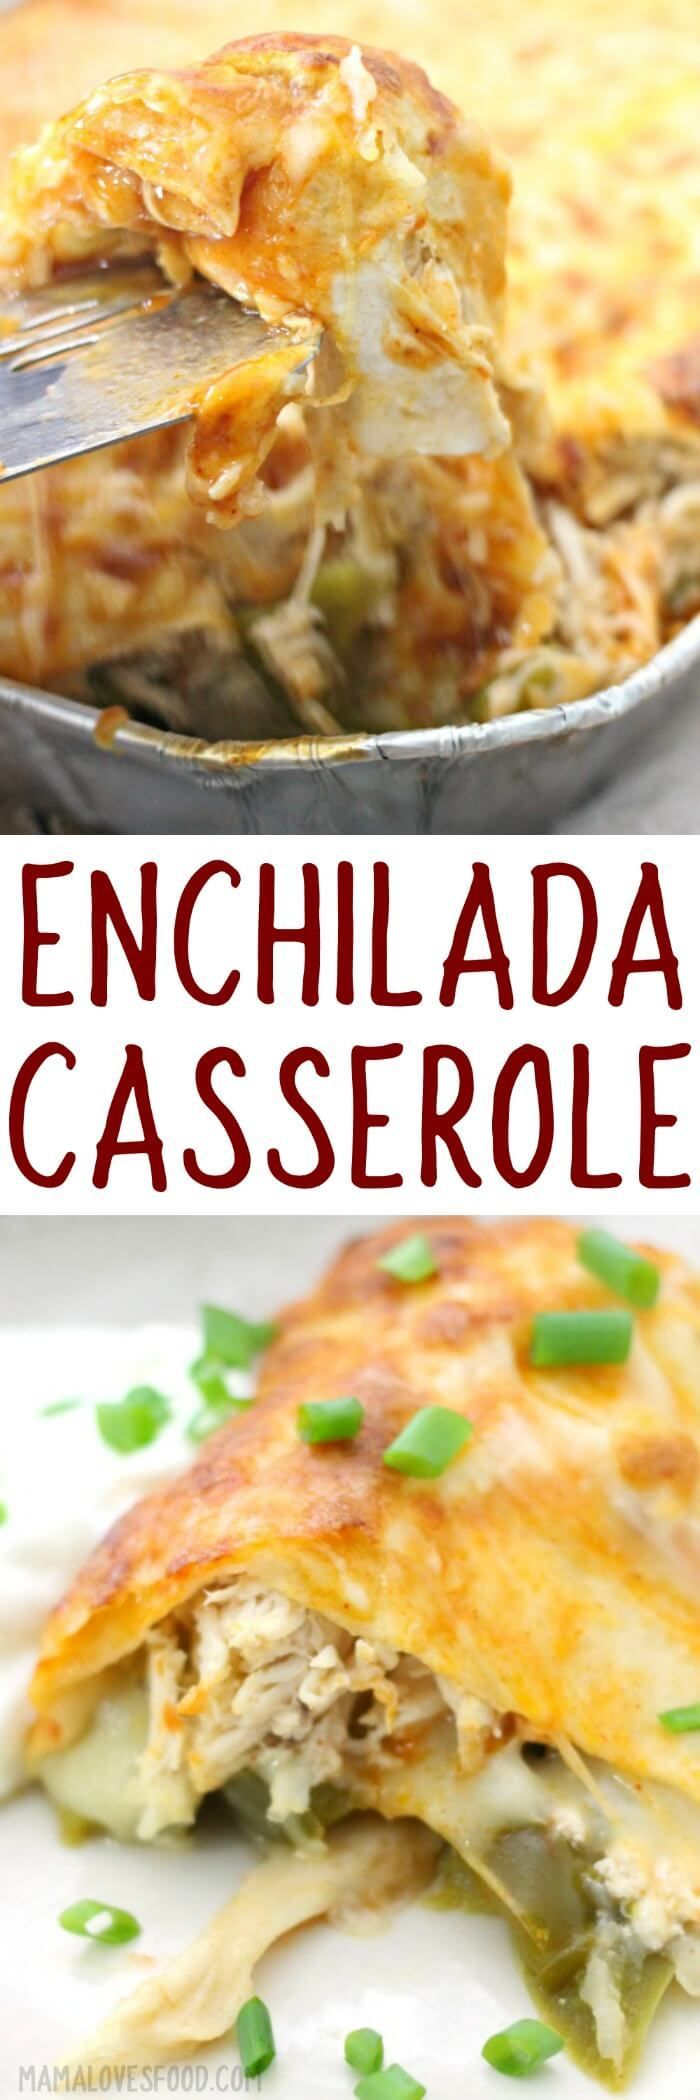 ENCHILADA CASSEROLE - easy chicken enchilada casserole #casserole #dinner #recipe #enchiladas